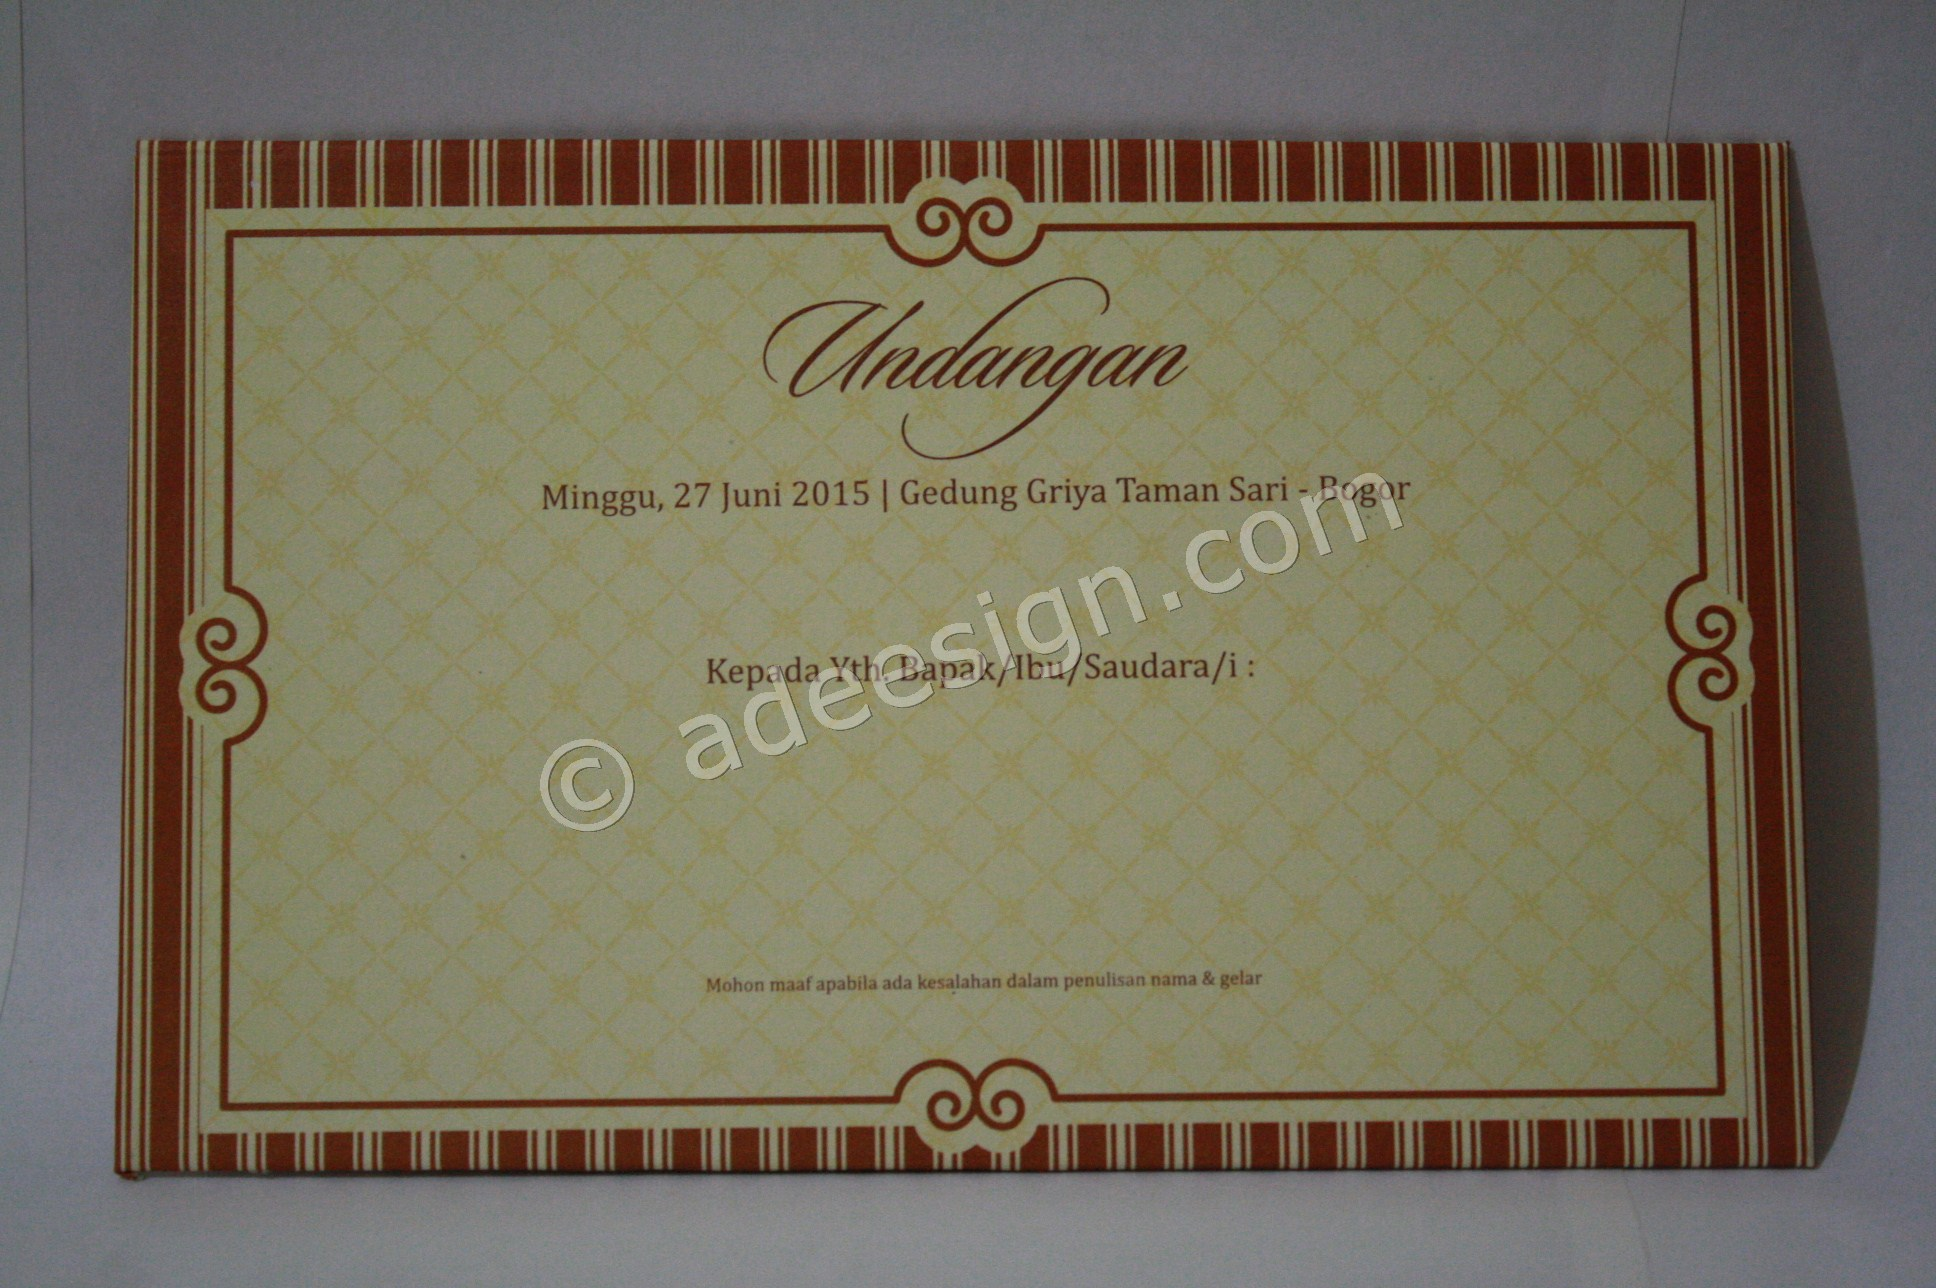 Undangan Pernikahan Semi Hard Cover Nurul dan Imam 1 - Percetakan Wedding Invitations Unik dan Simple di Dukuh Sutorejo